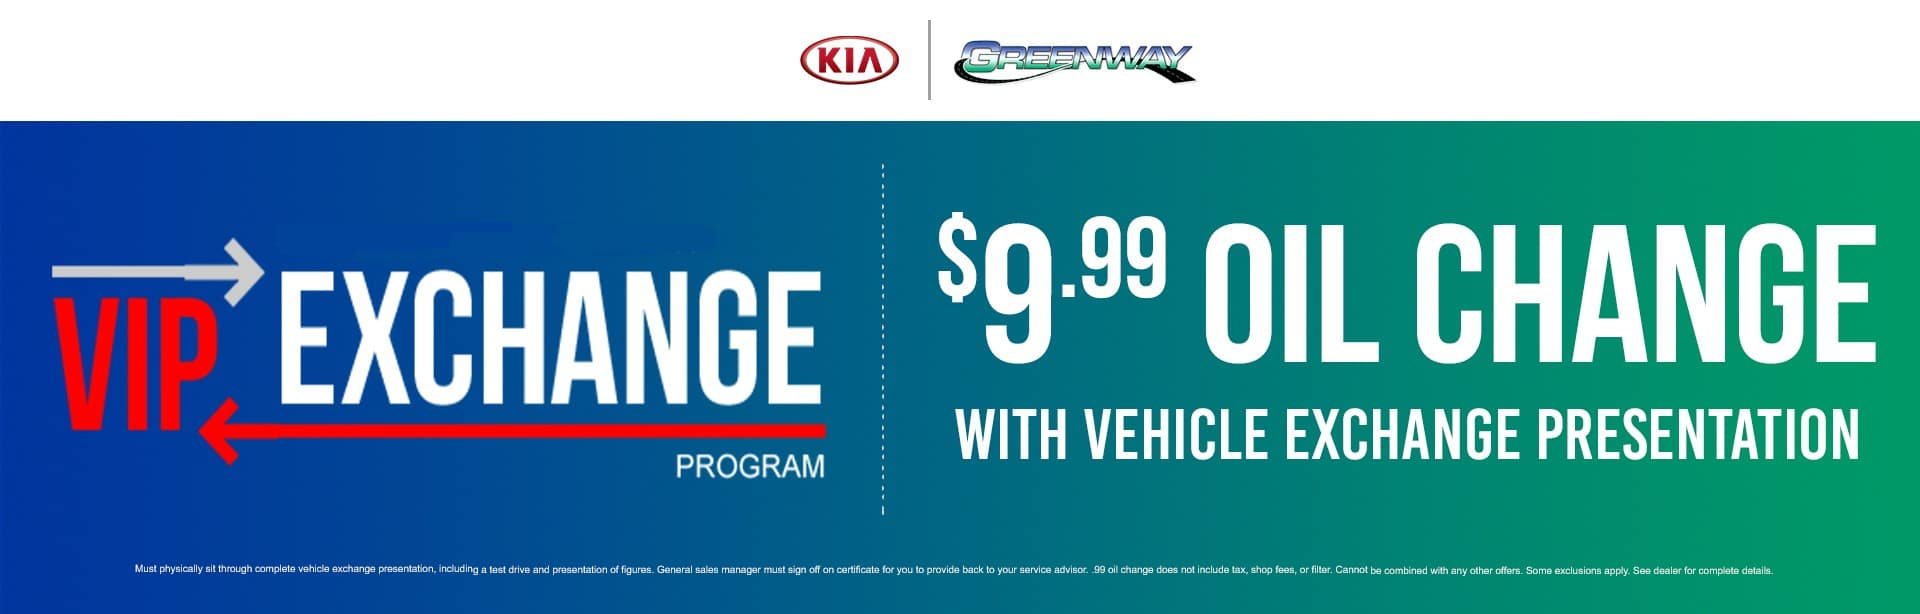 Kia VIP Exchange 1920×614-2